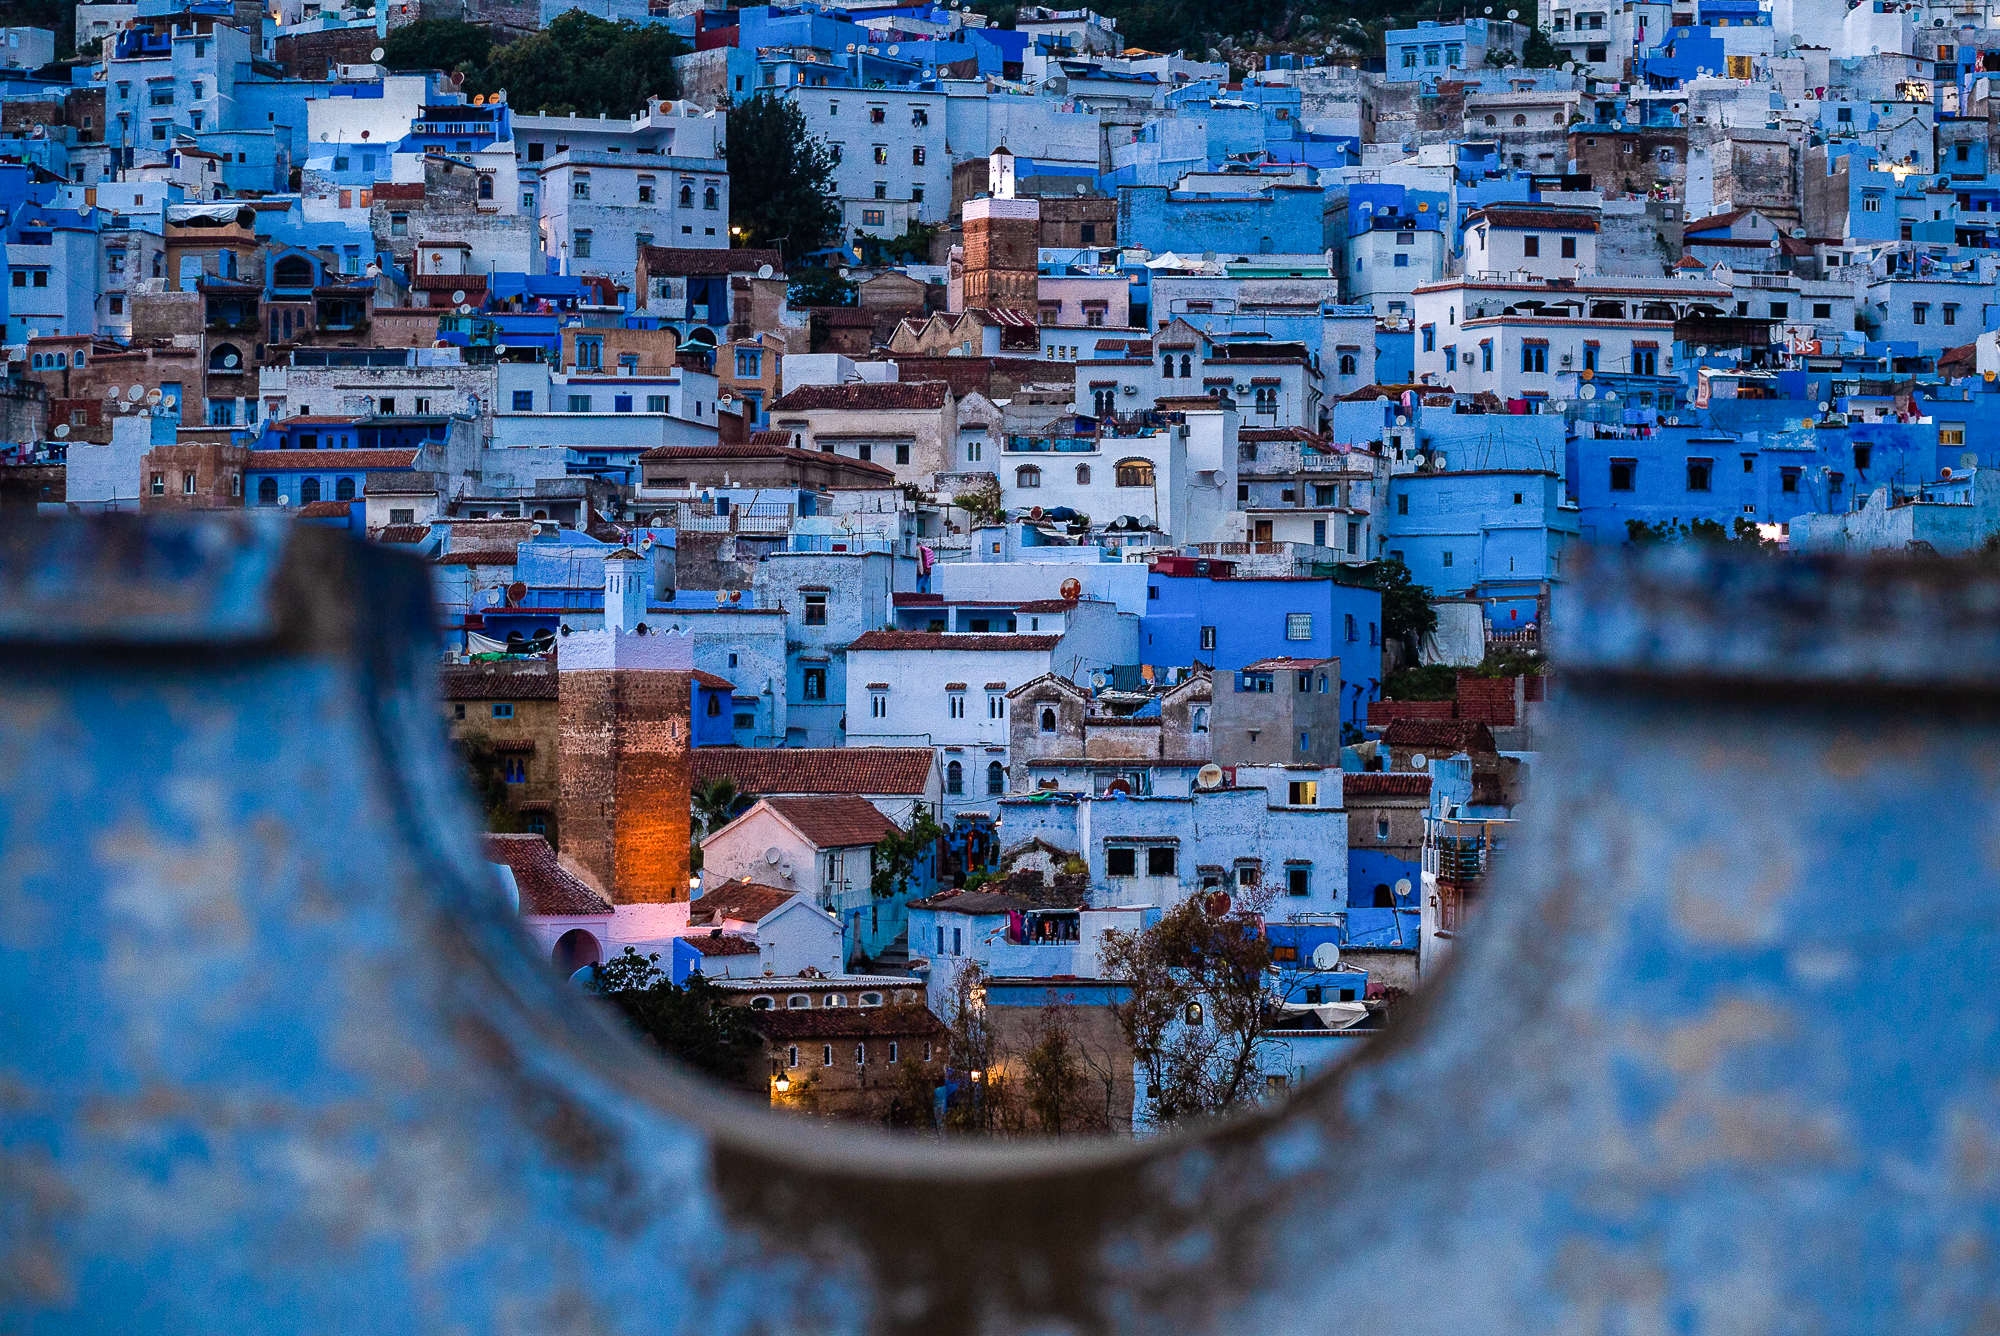 The Vibrant Blue Hues of Morocco's Chefchaouen Village Captured in Photographs by Tiago & Tania | Colossal